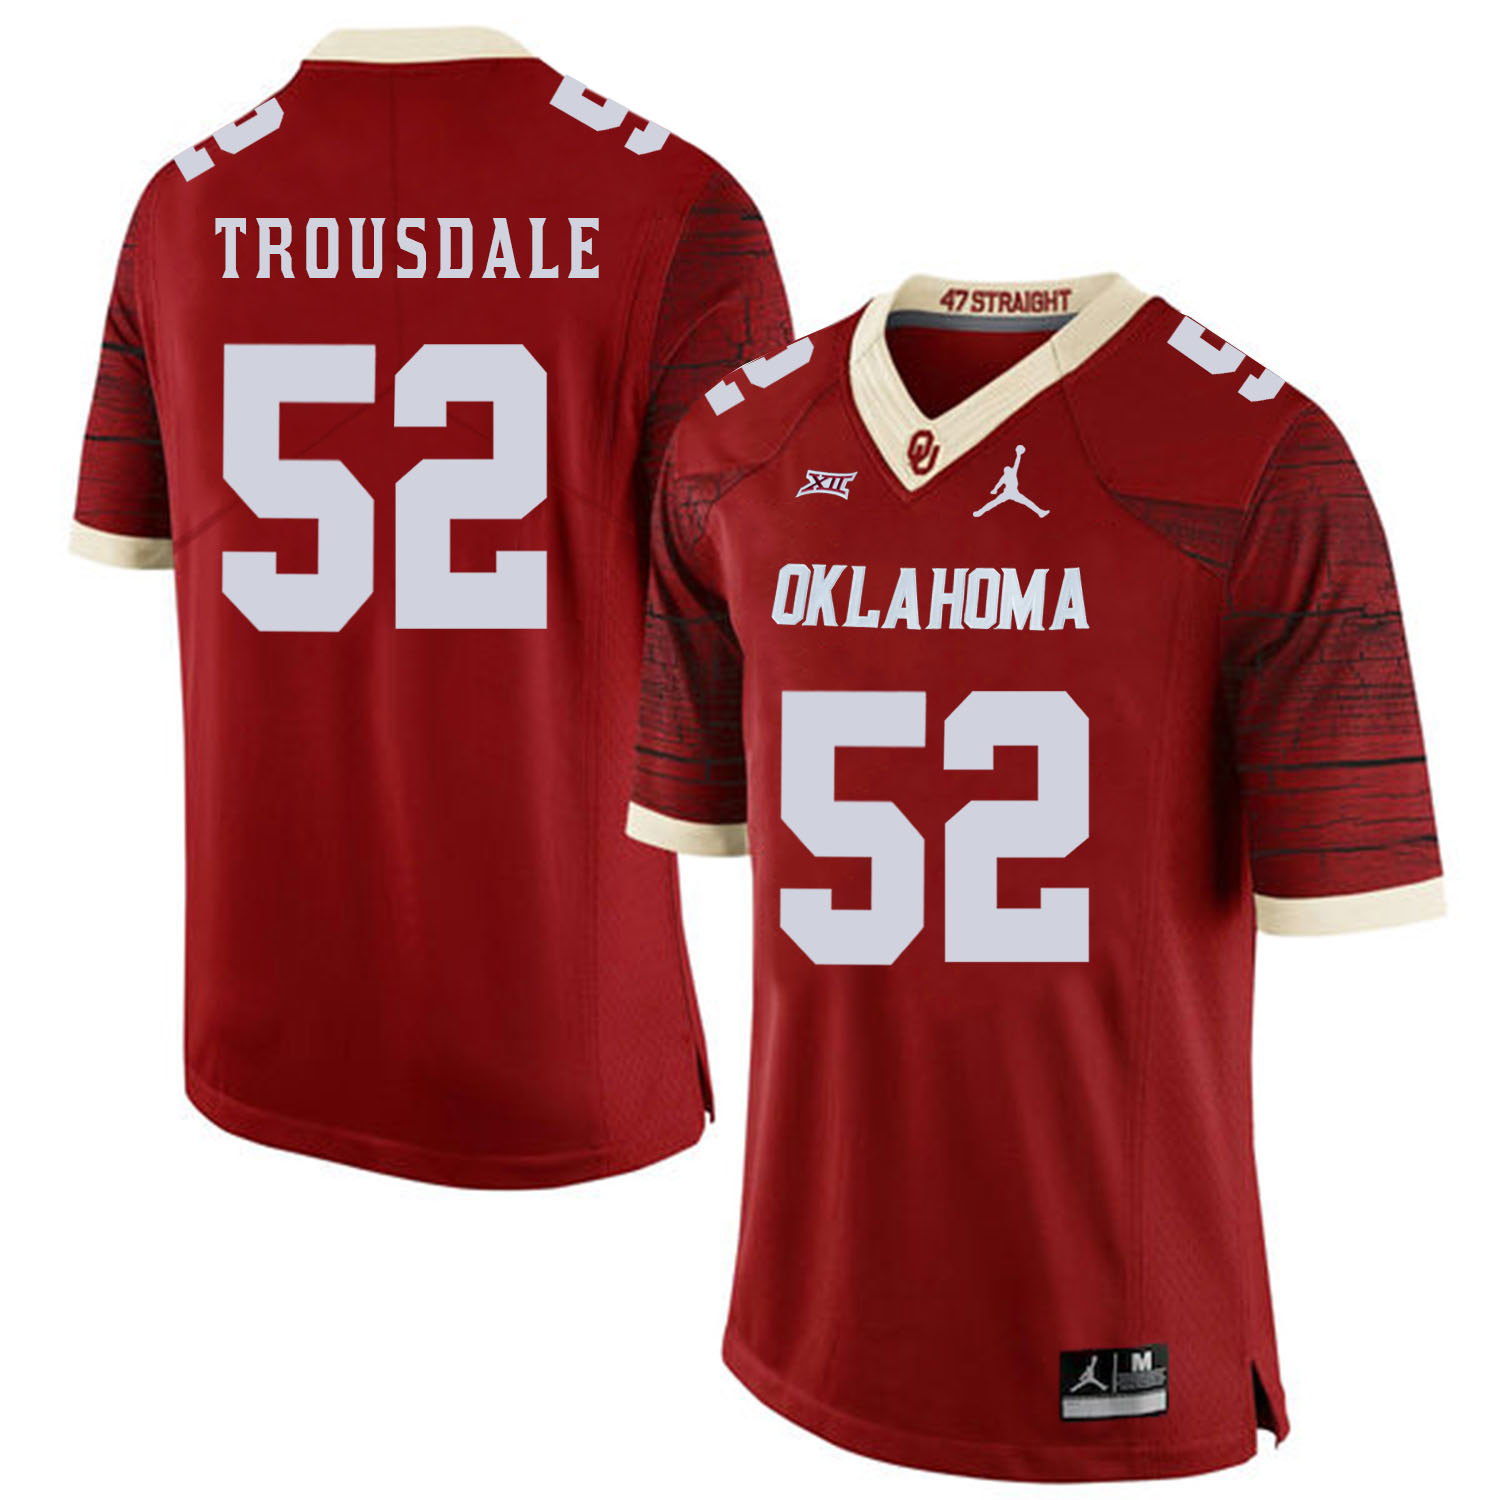 Oklahoma Sooners 52 Beau Trousdale Red 47 Game Winning Streak College Football Jersey